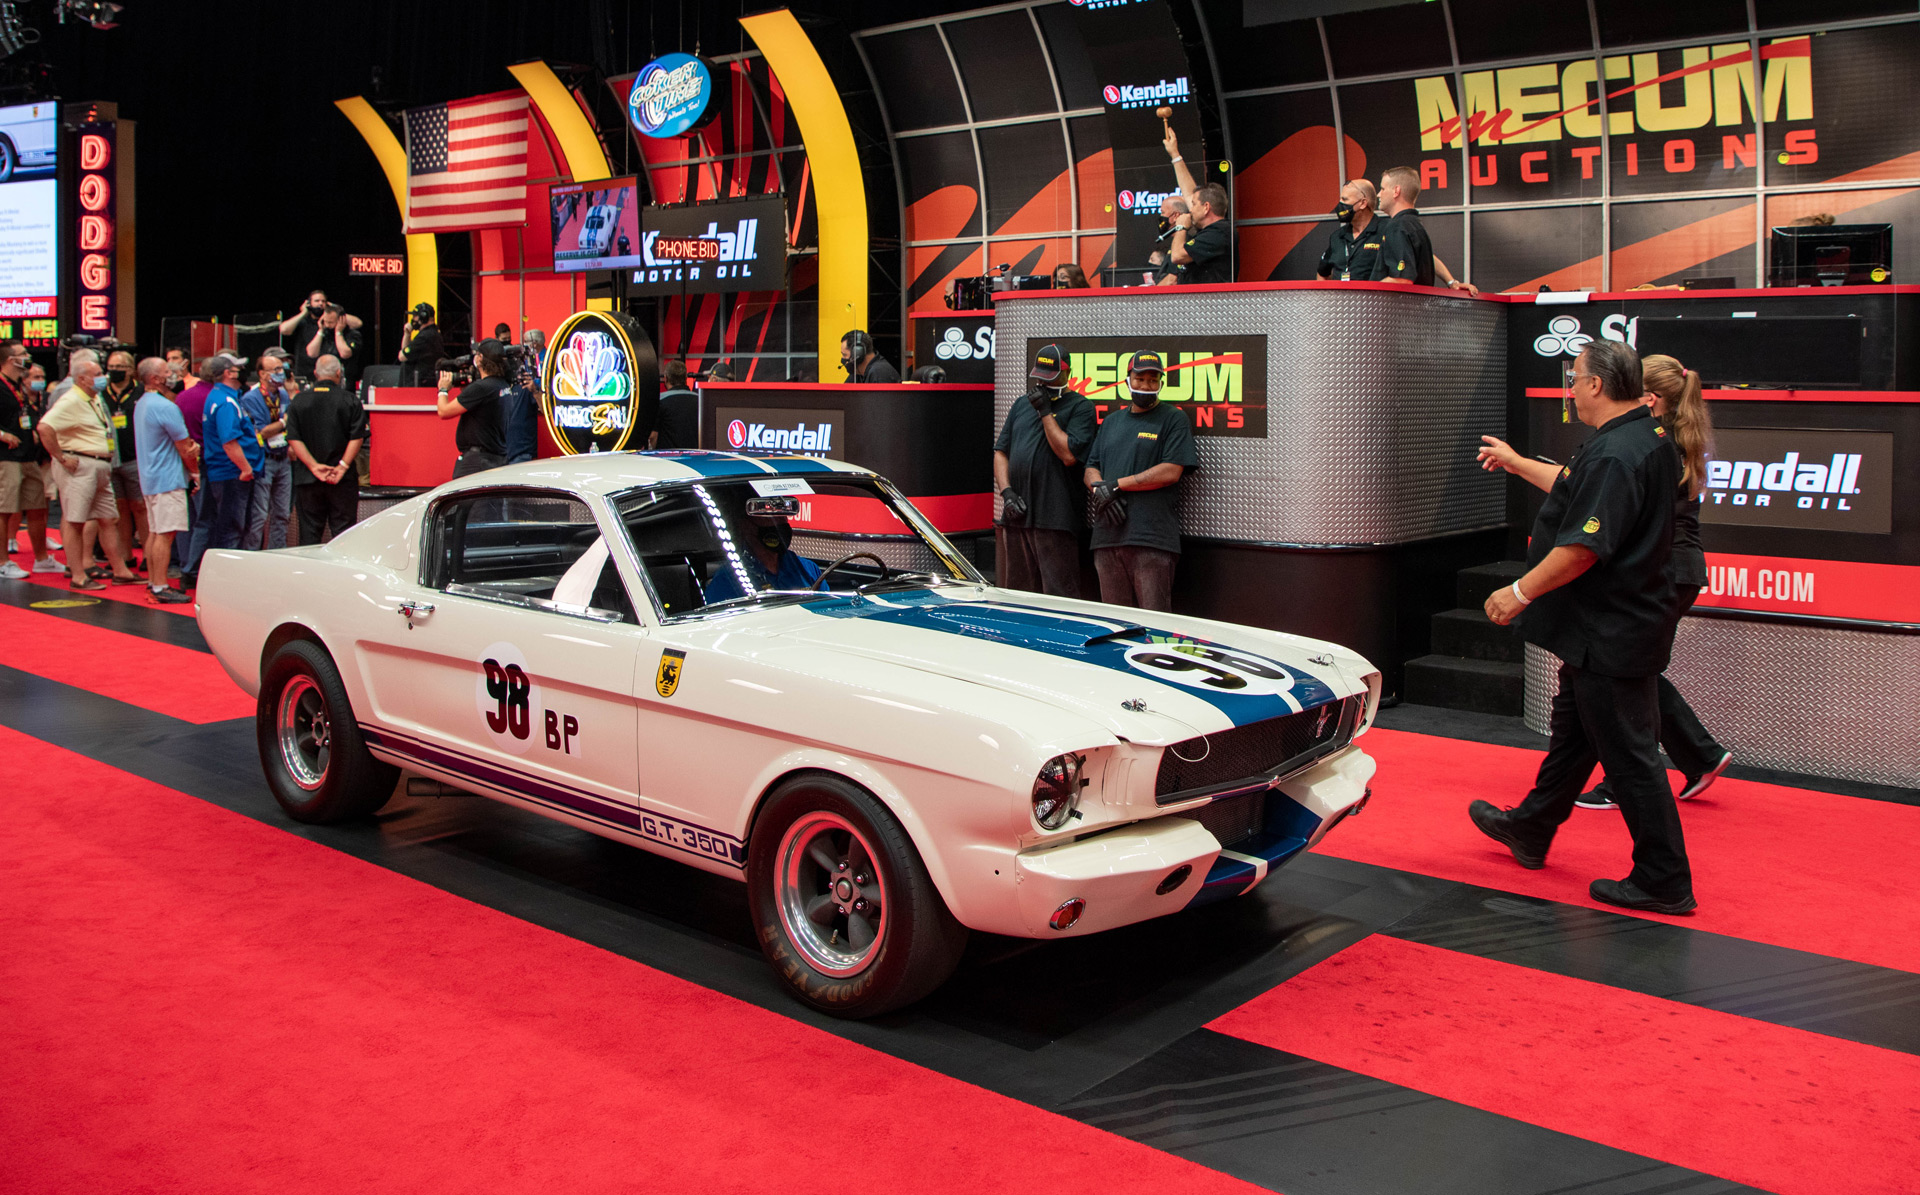 1965 Ford Shelby GT350 Competition with chassis no. 5R002 at Mecum action - July 17, 2020